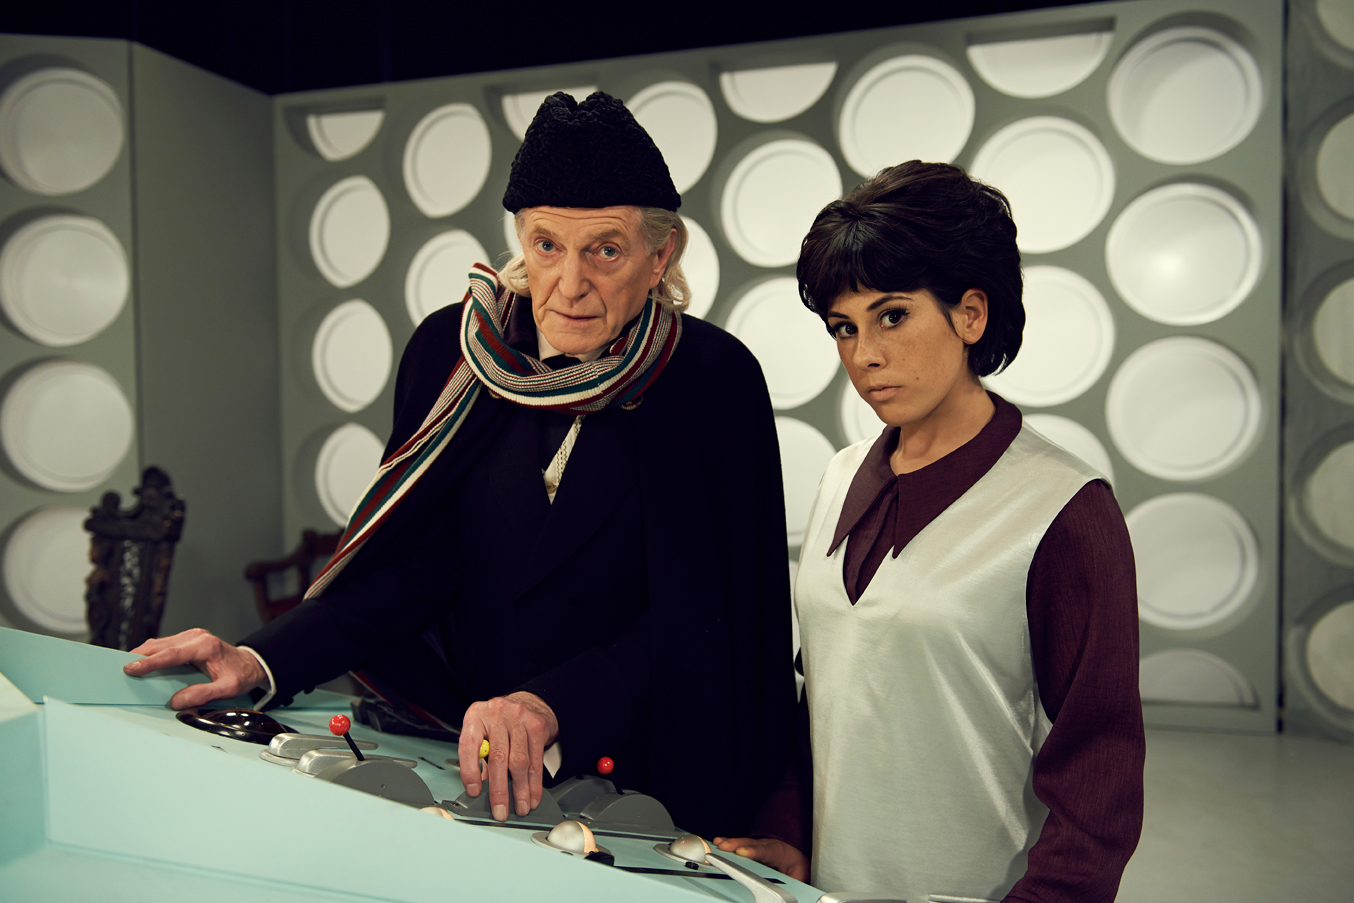 David Bradley as First Doctor William Hartnell and Claudia Grant as Carole Ann Ford (who played Susan Foreman on 'Doctor Who') in 'An Adventure in Space and Time' (Photo: BBC AMERICA)